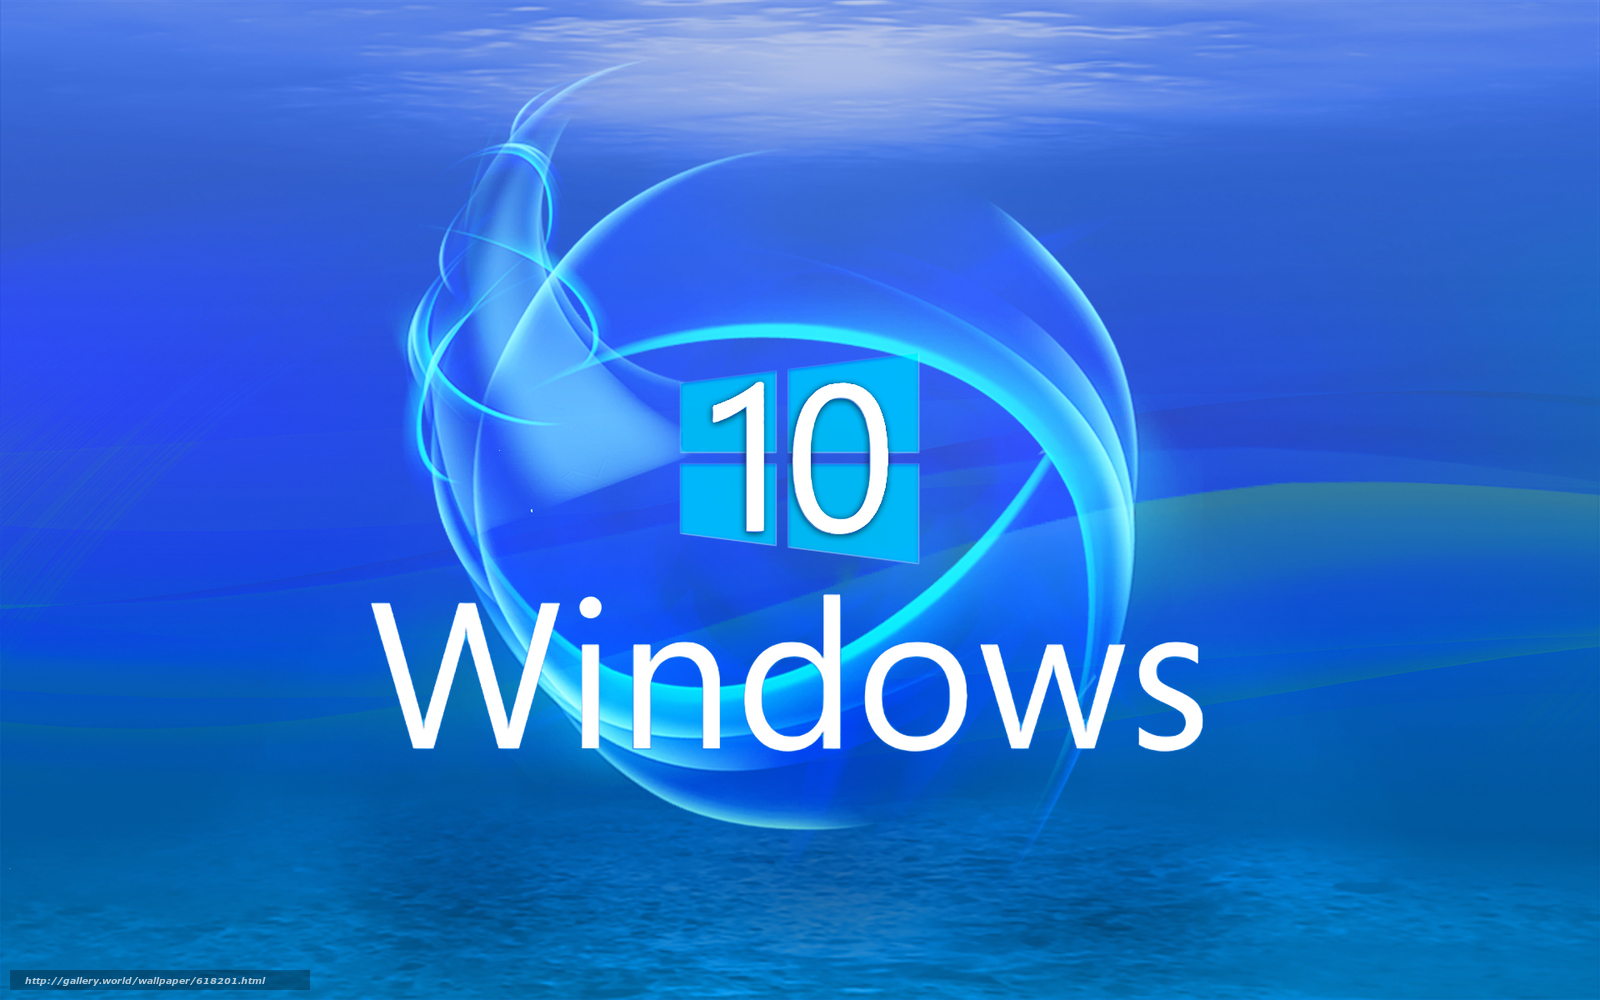 Download wallpaper windows 10